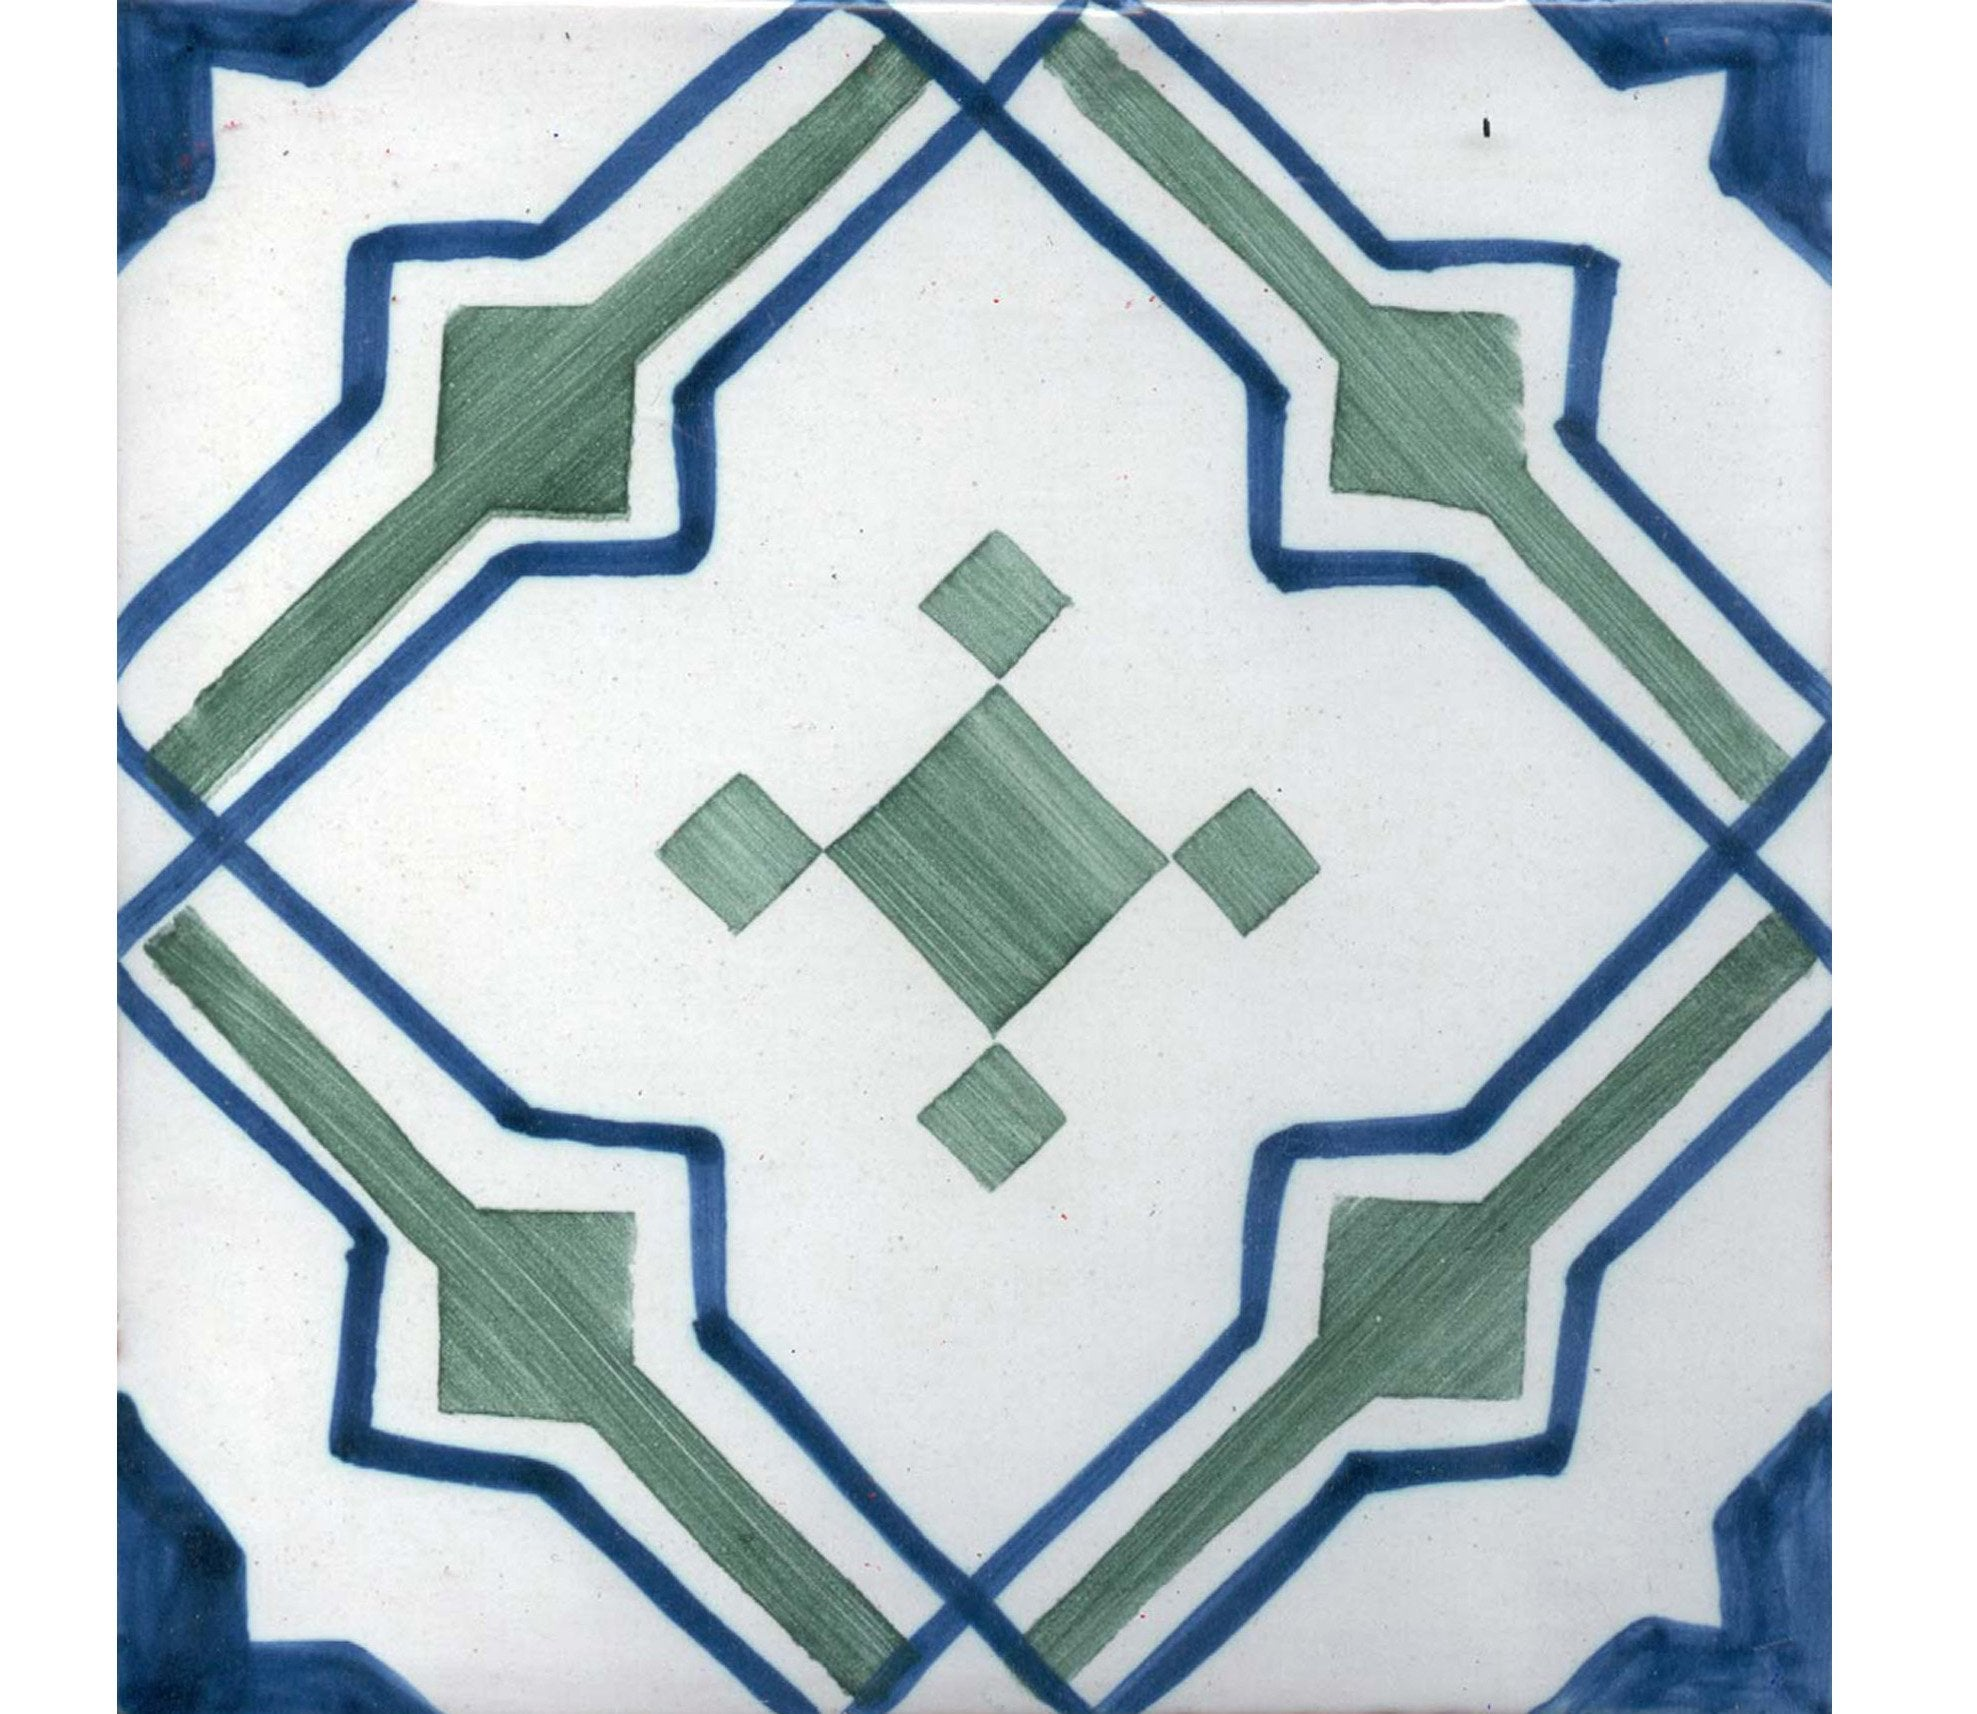 Series S Handpainted Tiles Product Image 32